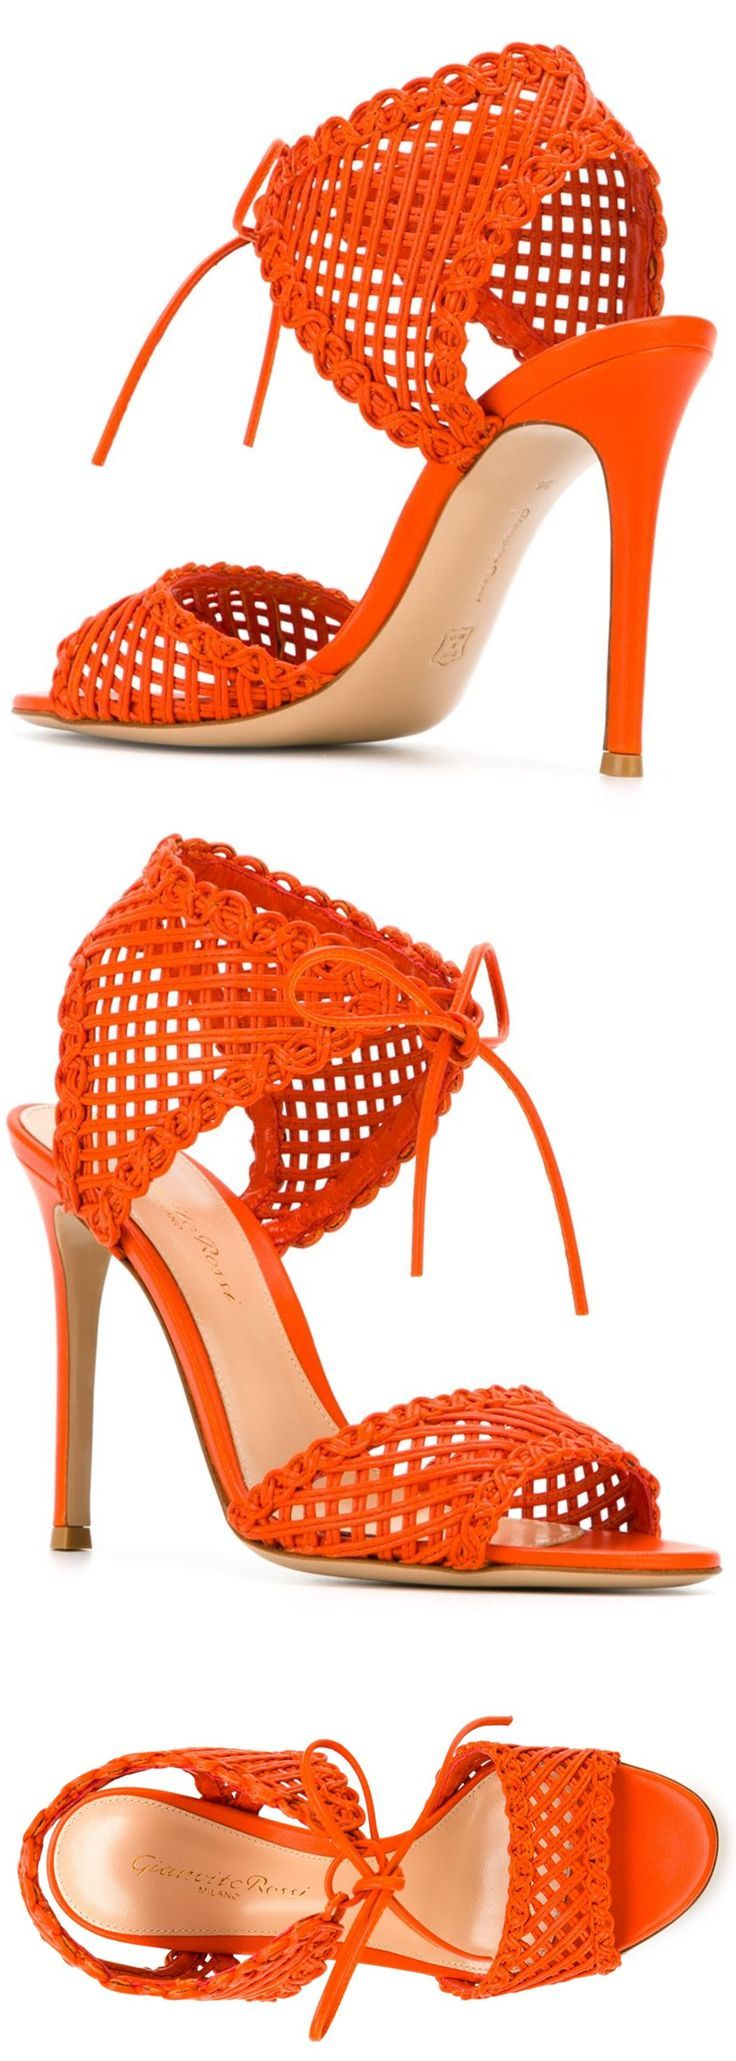 Gianvito Rossi Mandarin Orange woven tie leather sandals heels shoes. Featuring open toe, a woven design, a tie fastening, a branded insole and a high stiletto heel. Son of the legendary shoe-maker Sergio Rossi, Gianvito Rossi followed in his father's footsteps and launched his eponymous footwear label in 2006. Add Orange into your outfits with accessories. Mix well with Fuschia. #killerheels #wearorange #shoes #orange #fashion #fashionista #shoesdaytuesday #shoefetish #affiliatelink…